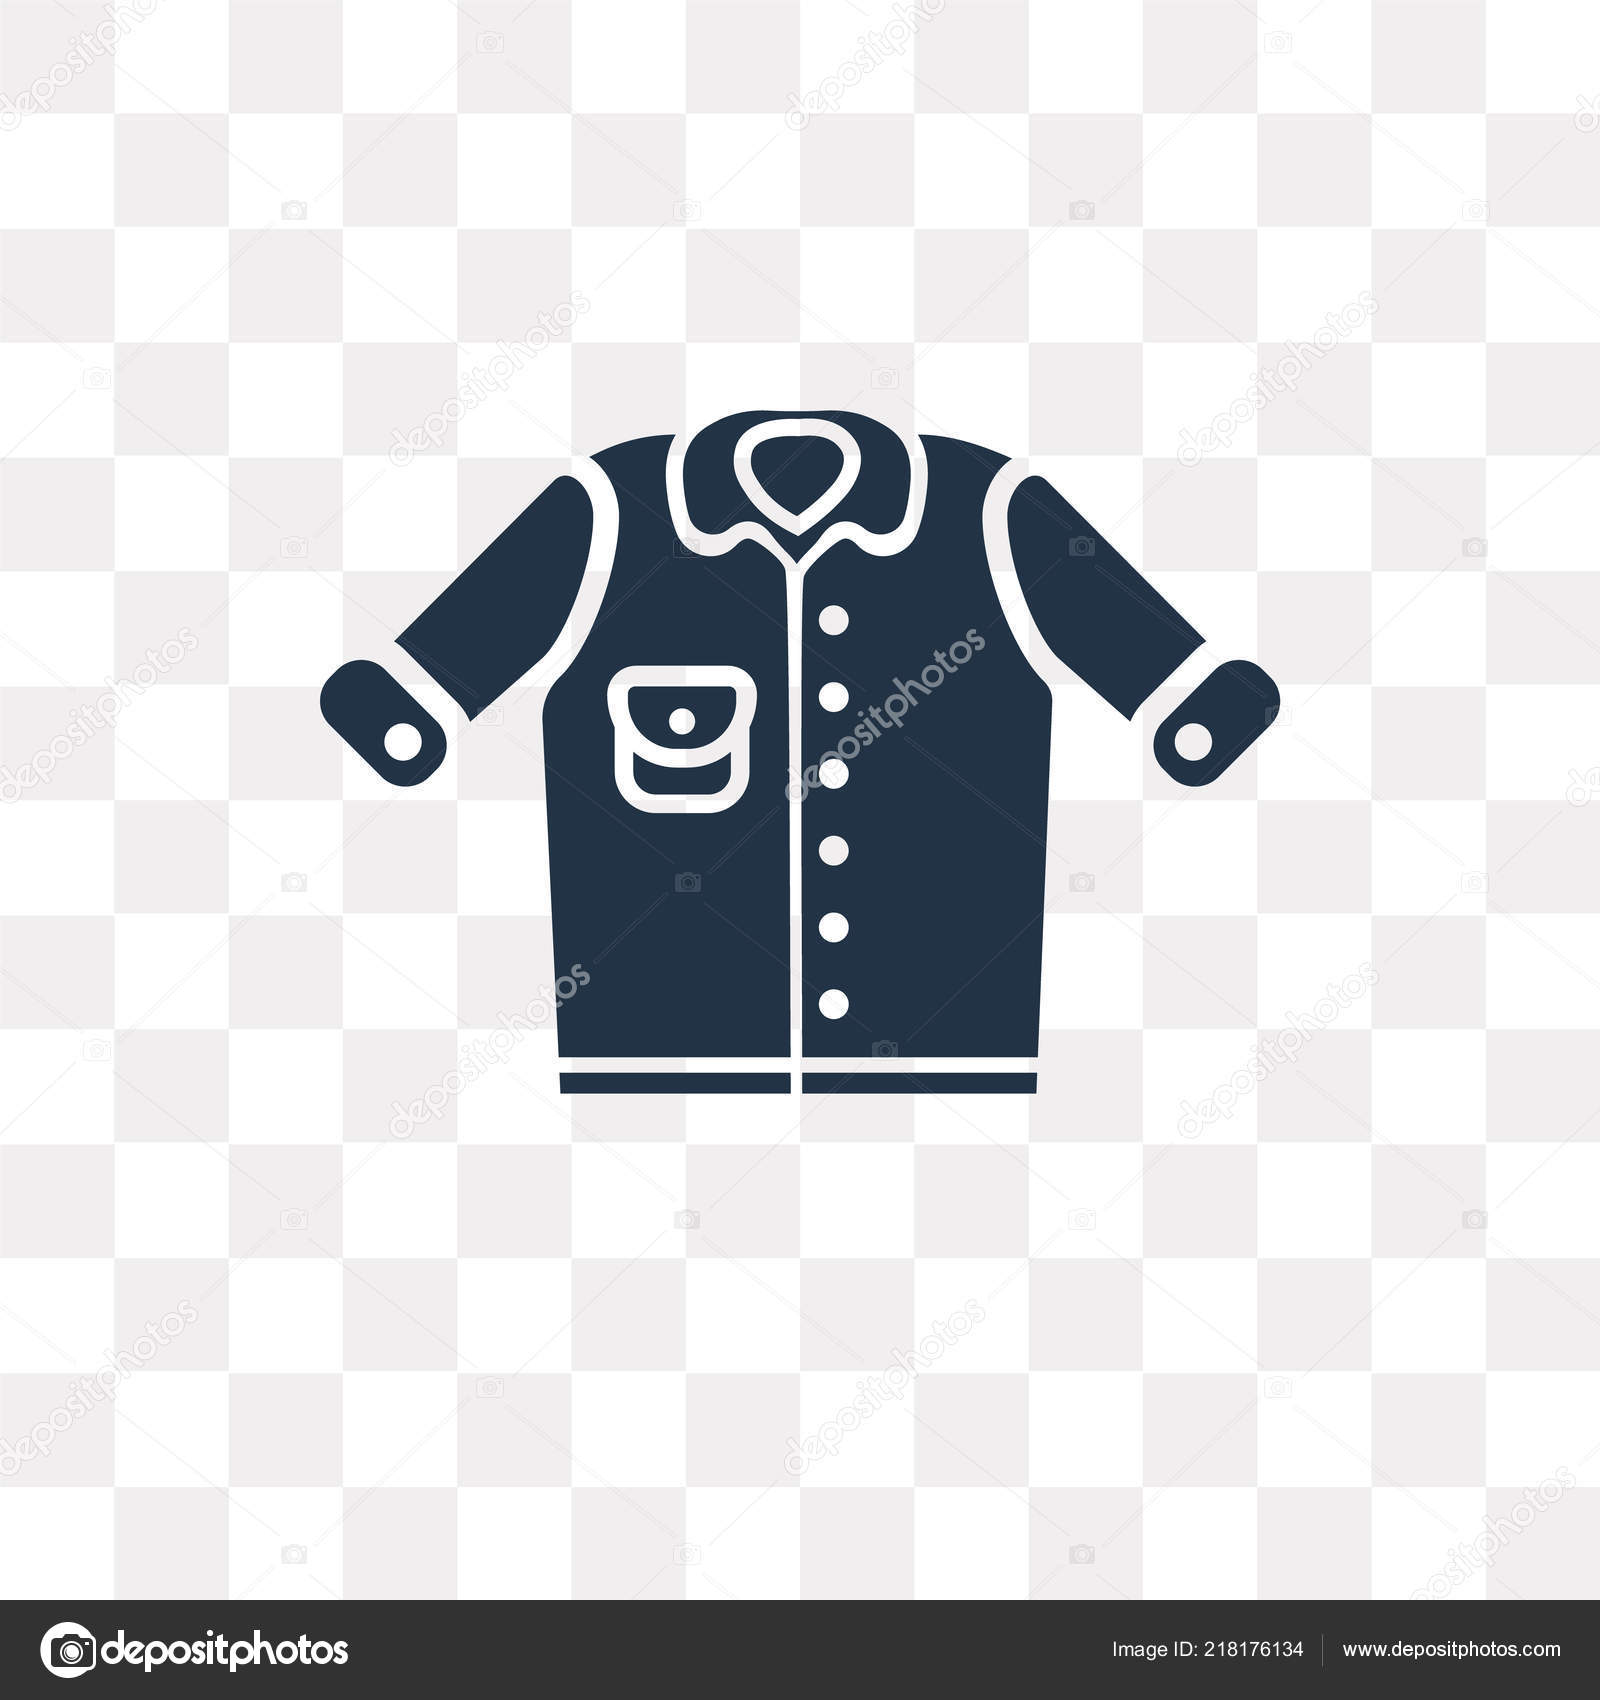 Background Denim Jacket Transparent Denim Jacket Vector Icon Isolated Transparent Background Denim Jacket Transparency Stock Vector C Mmvector 218176134